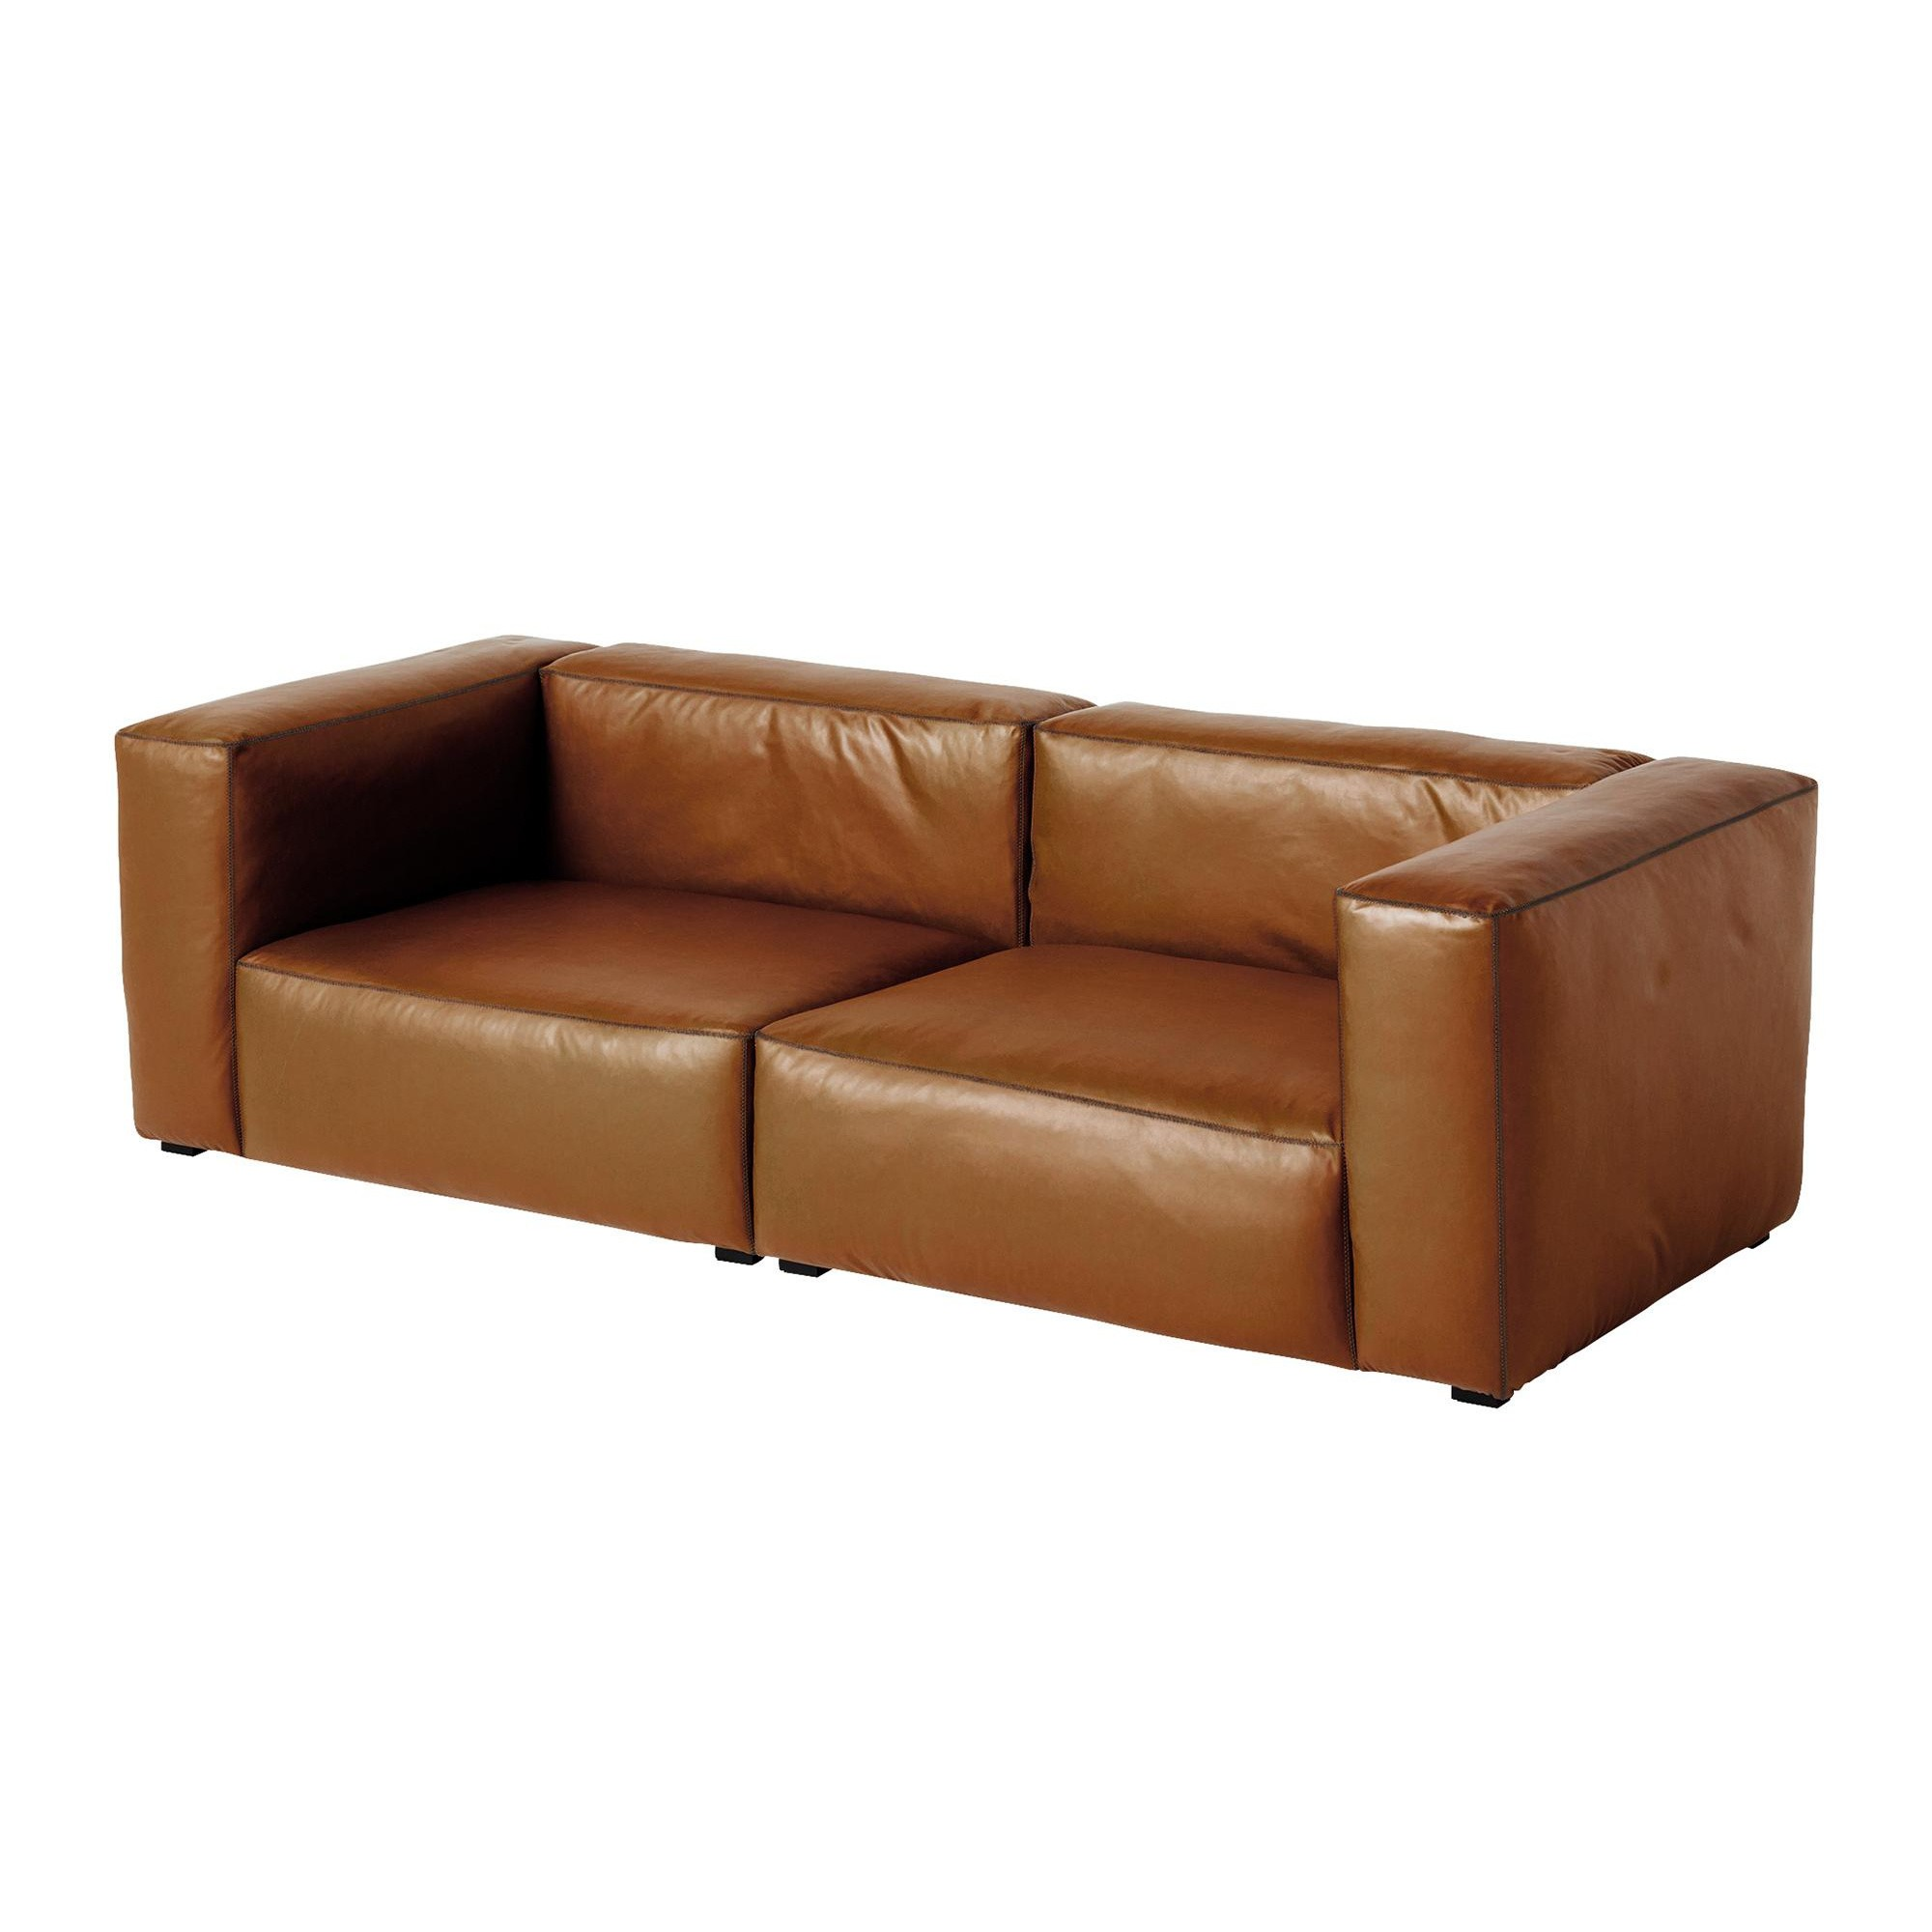 Hay Mags Soft 2 5 Seater Leather Sofa 228x95 5x67